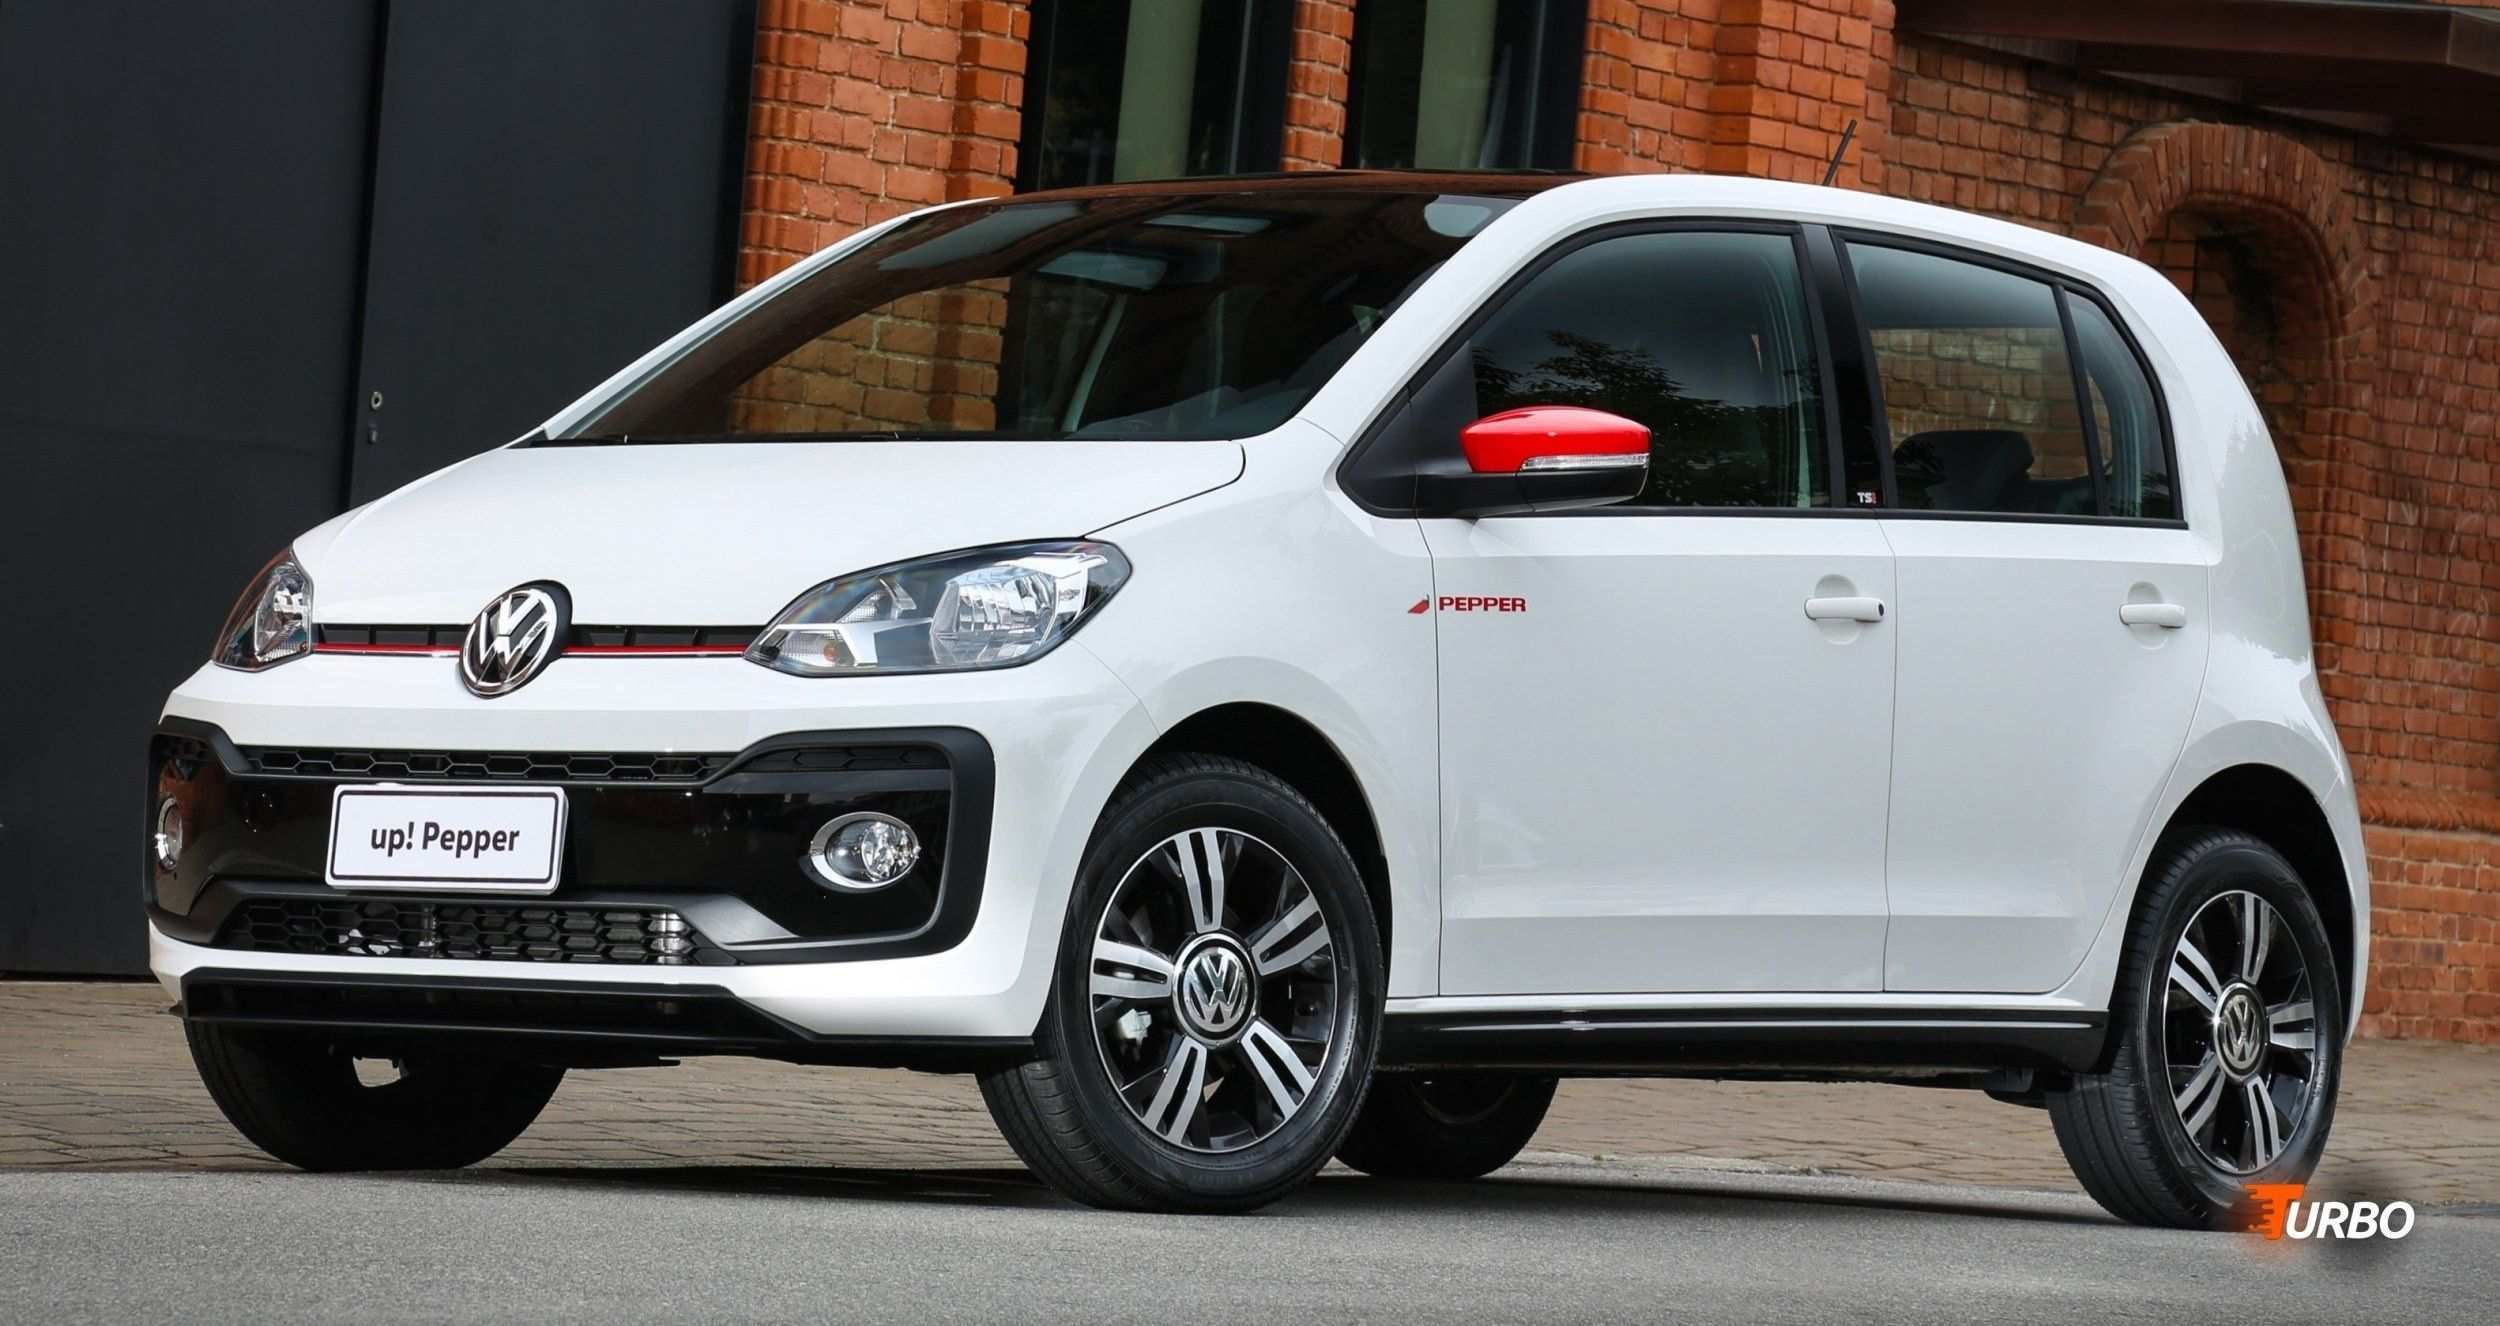 78 The Vw Up Pepper 2019 Ratings